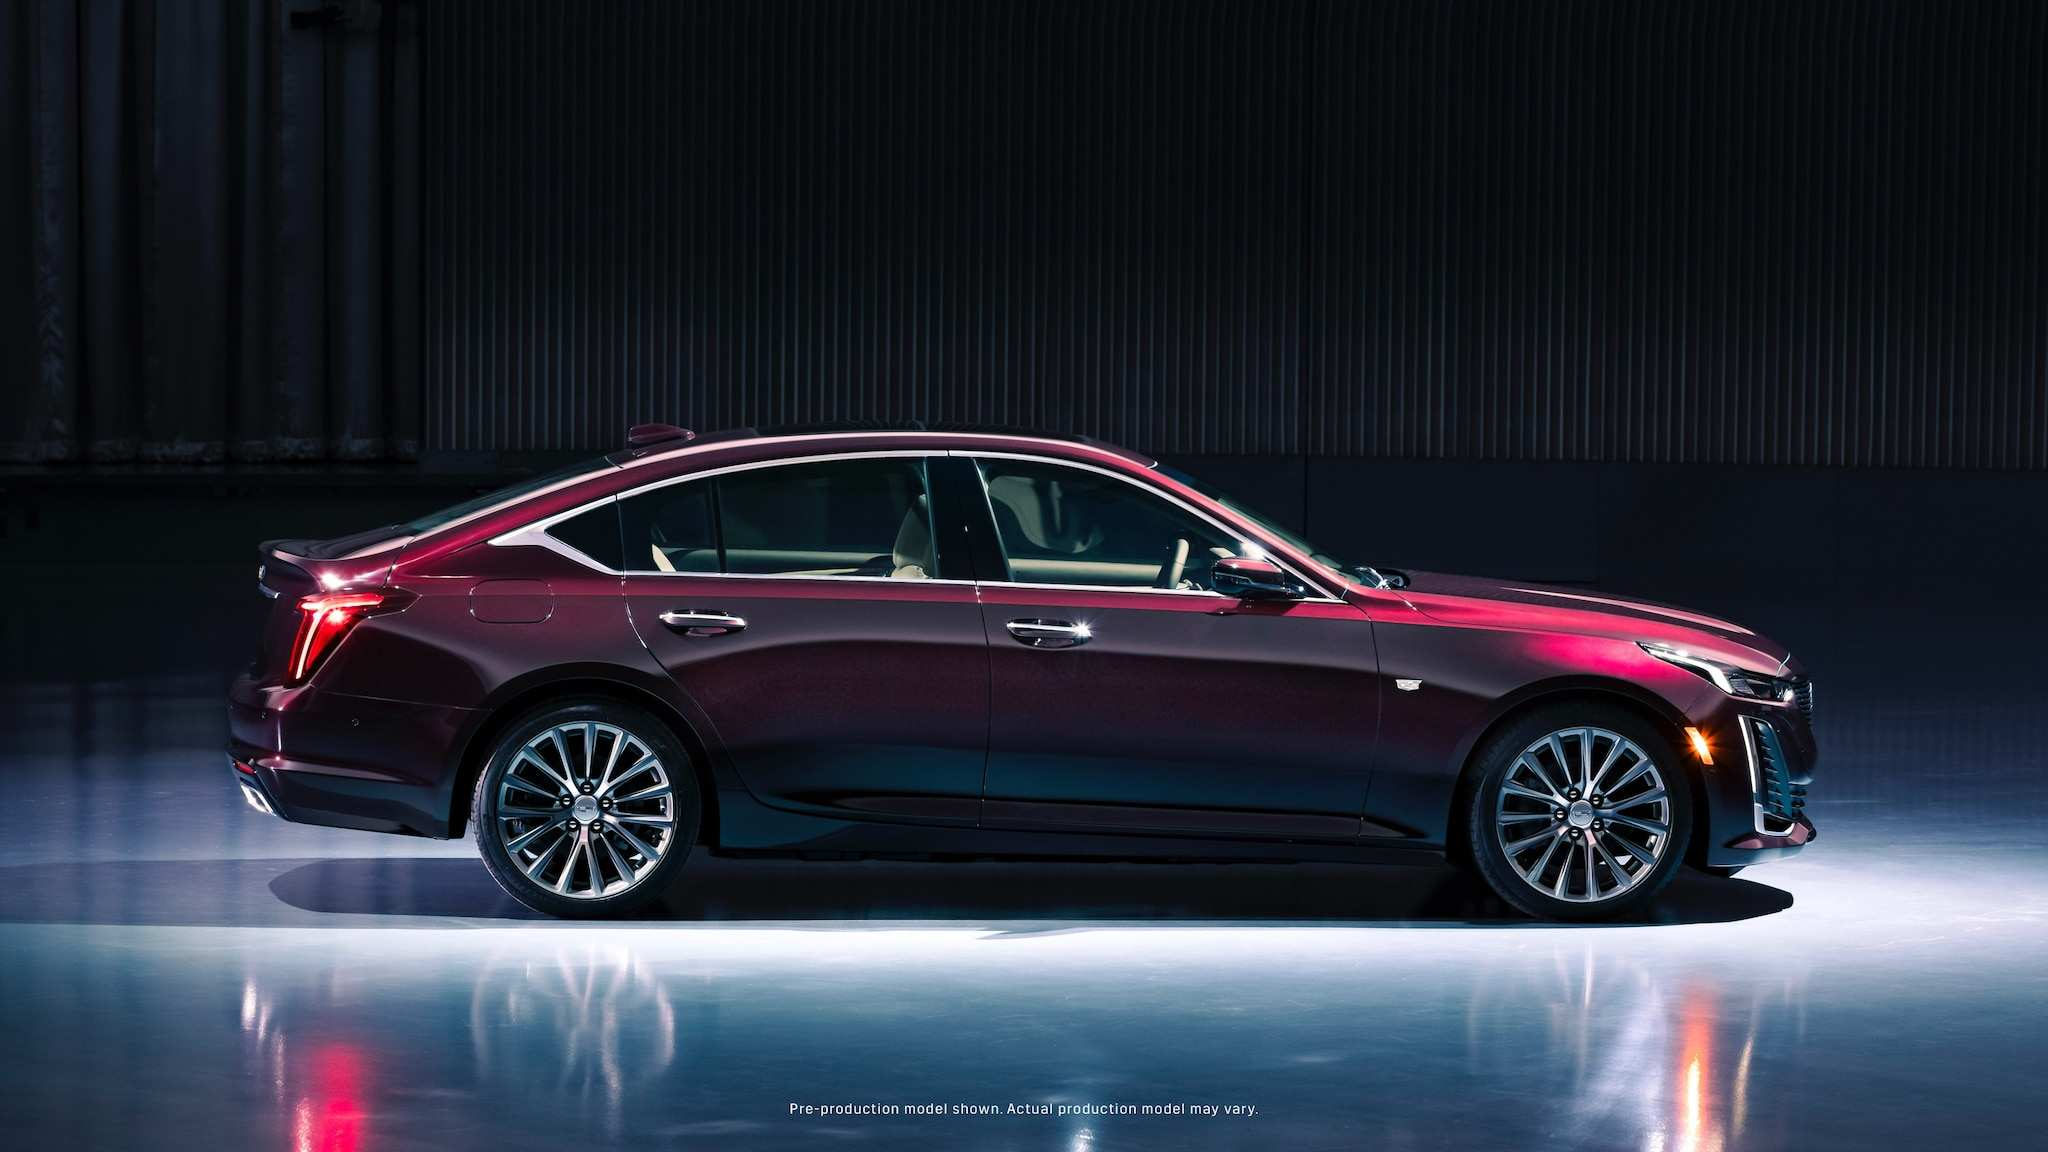 83 The Cadillac Ct5 2020 New Concept with Cadillac Ct5 2020